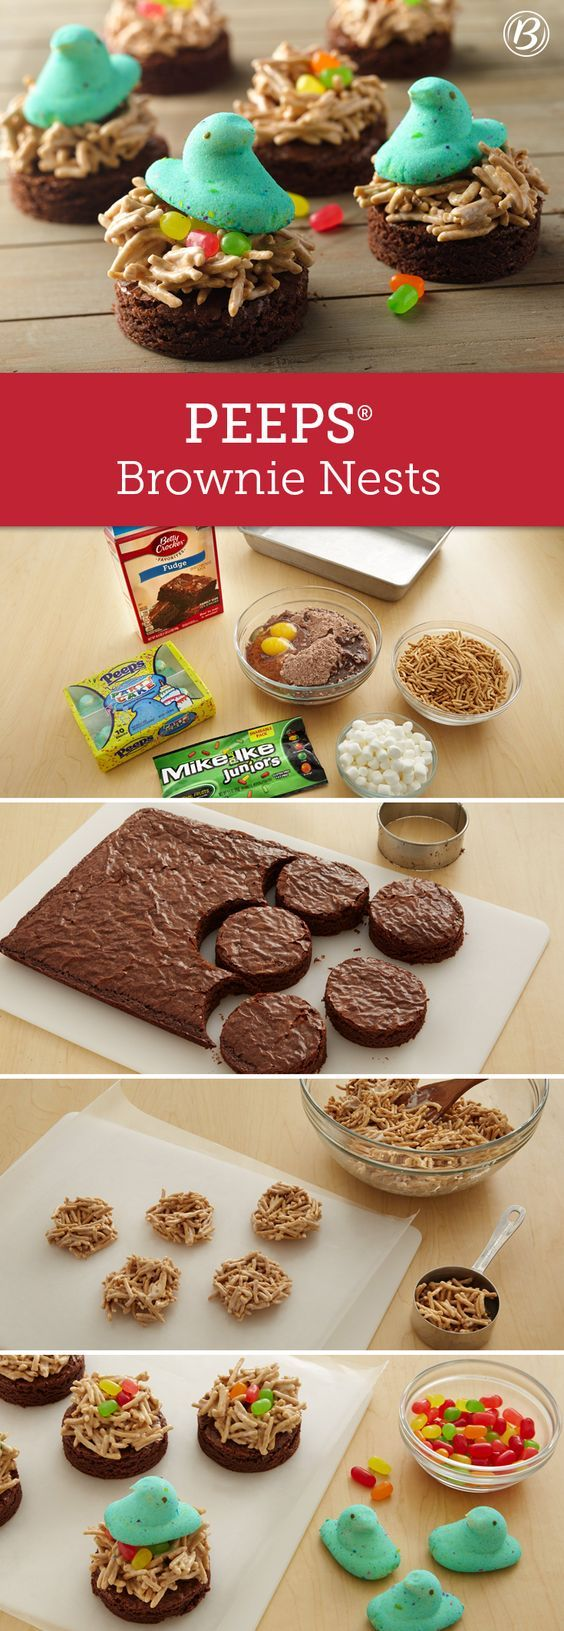 Brownies make the perfect base for these spring nests featuring adorable PEEPS® chicks and colorful Mike and Ike™ juniors candy. A fun addition to any Easter party spread!: